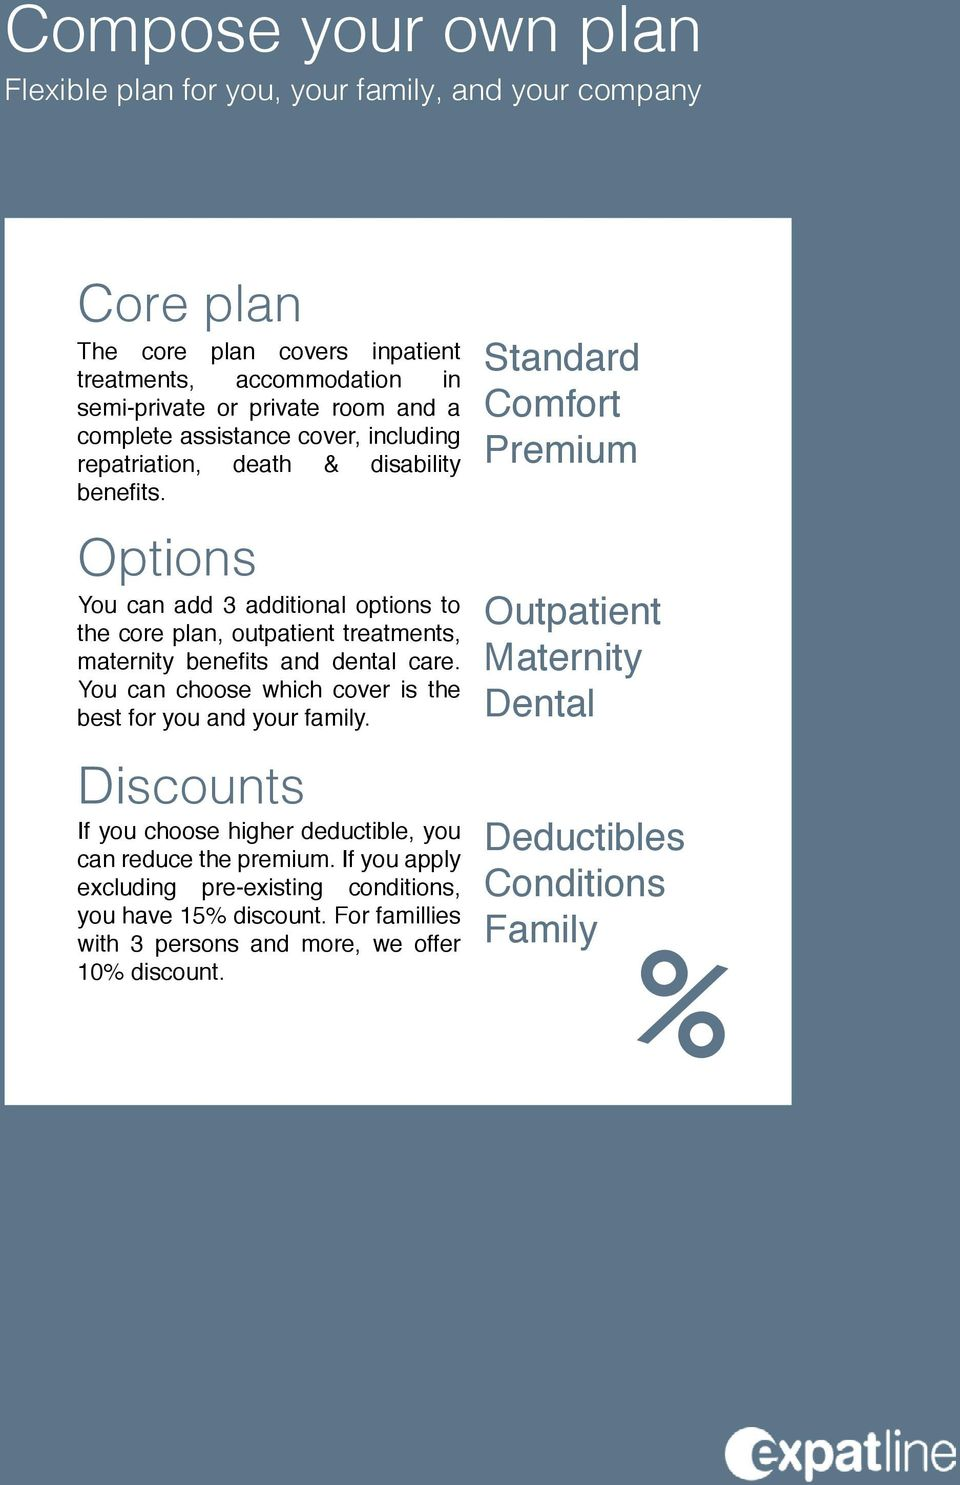 Options You can add 3 additional options to the core plan, outpatient treatments, maternity benefits and dental care. You can choose which cover is the best for you and your family.